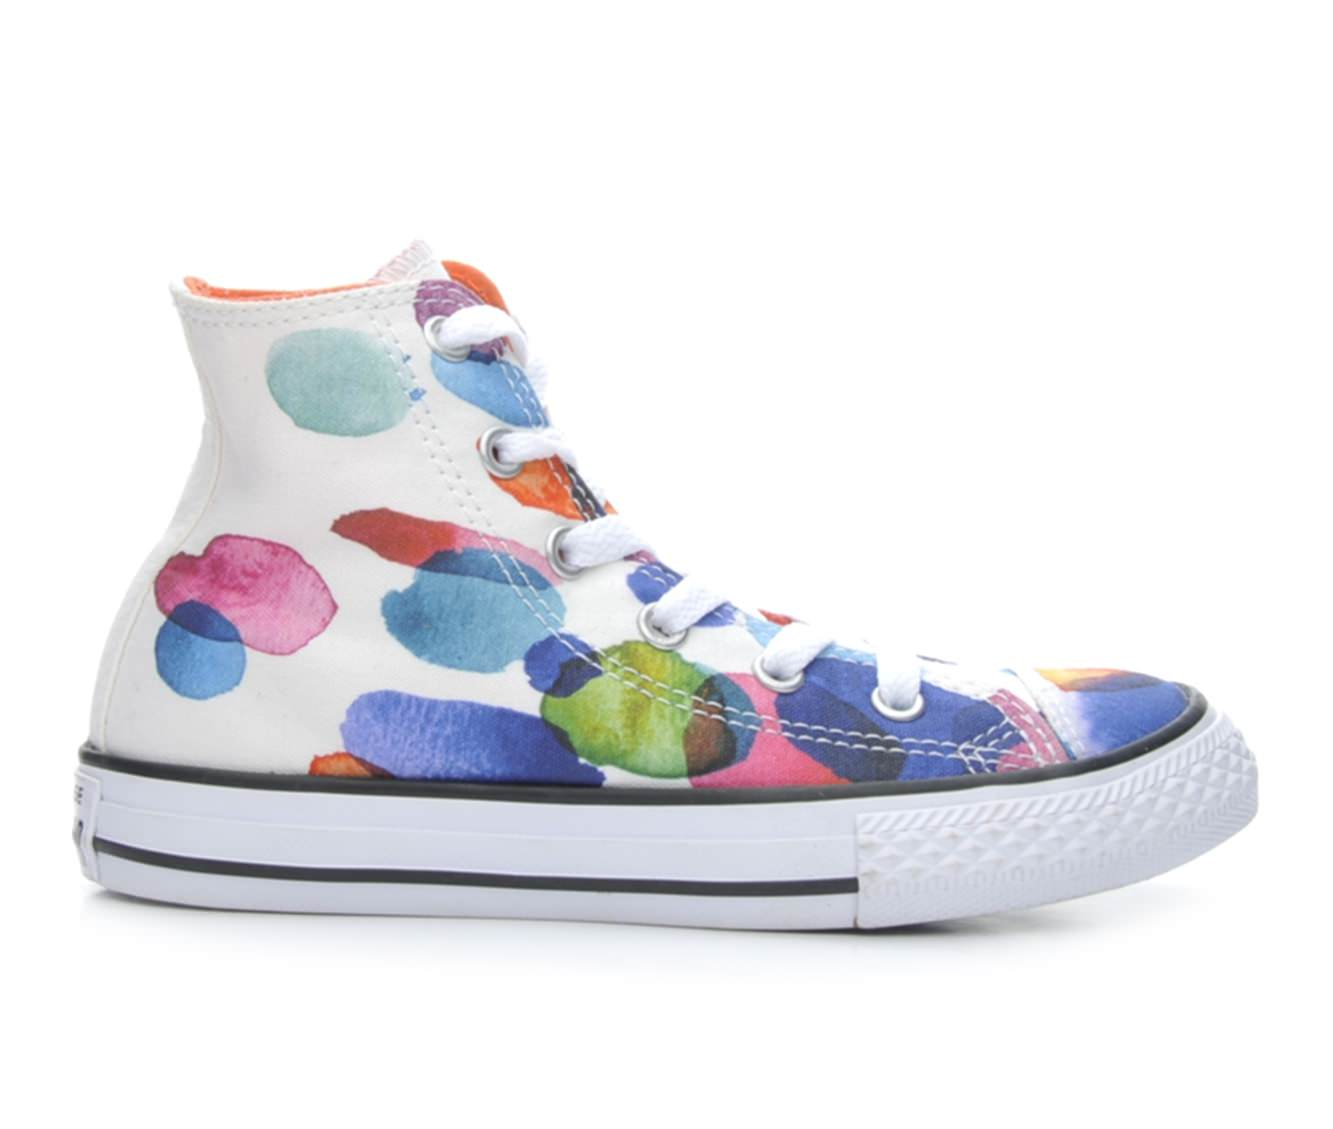 Girls' Converse Chuck Taylor All Star Hi Sneakers (Multicolor)